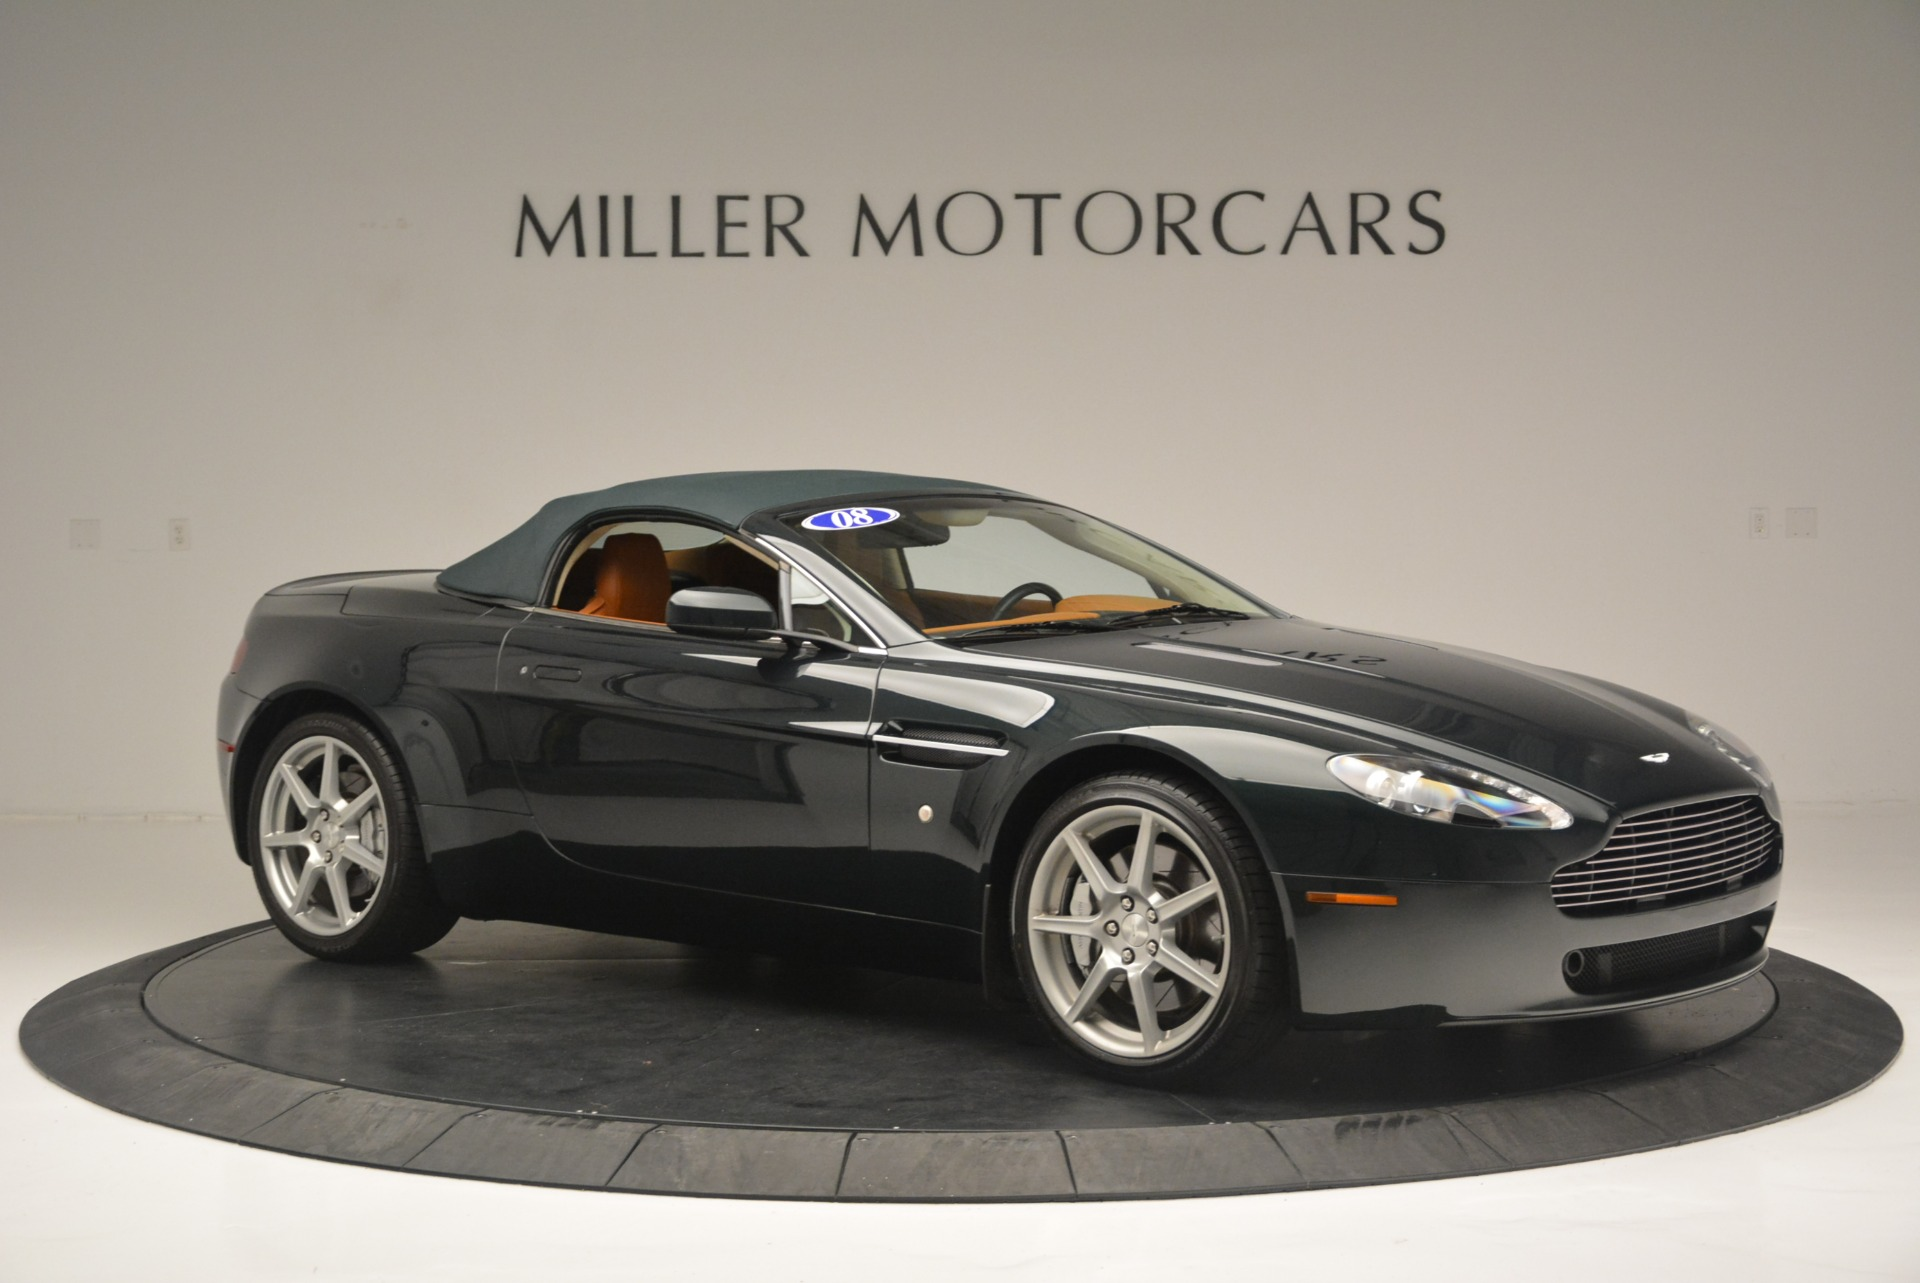 Used 2008 Aston Martin V8 Vantage Roadster For Sale In Greenwich, CT 2422_p13